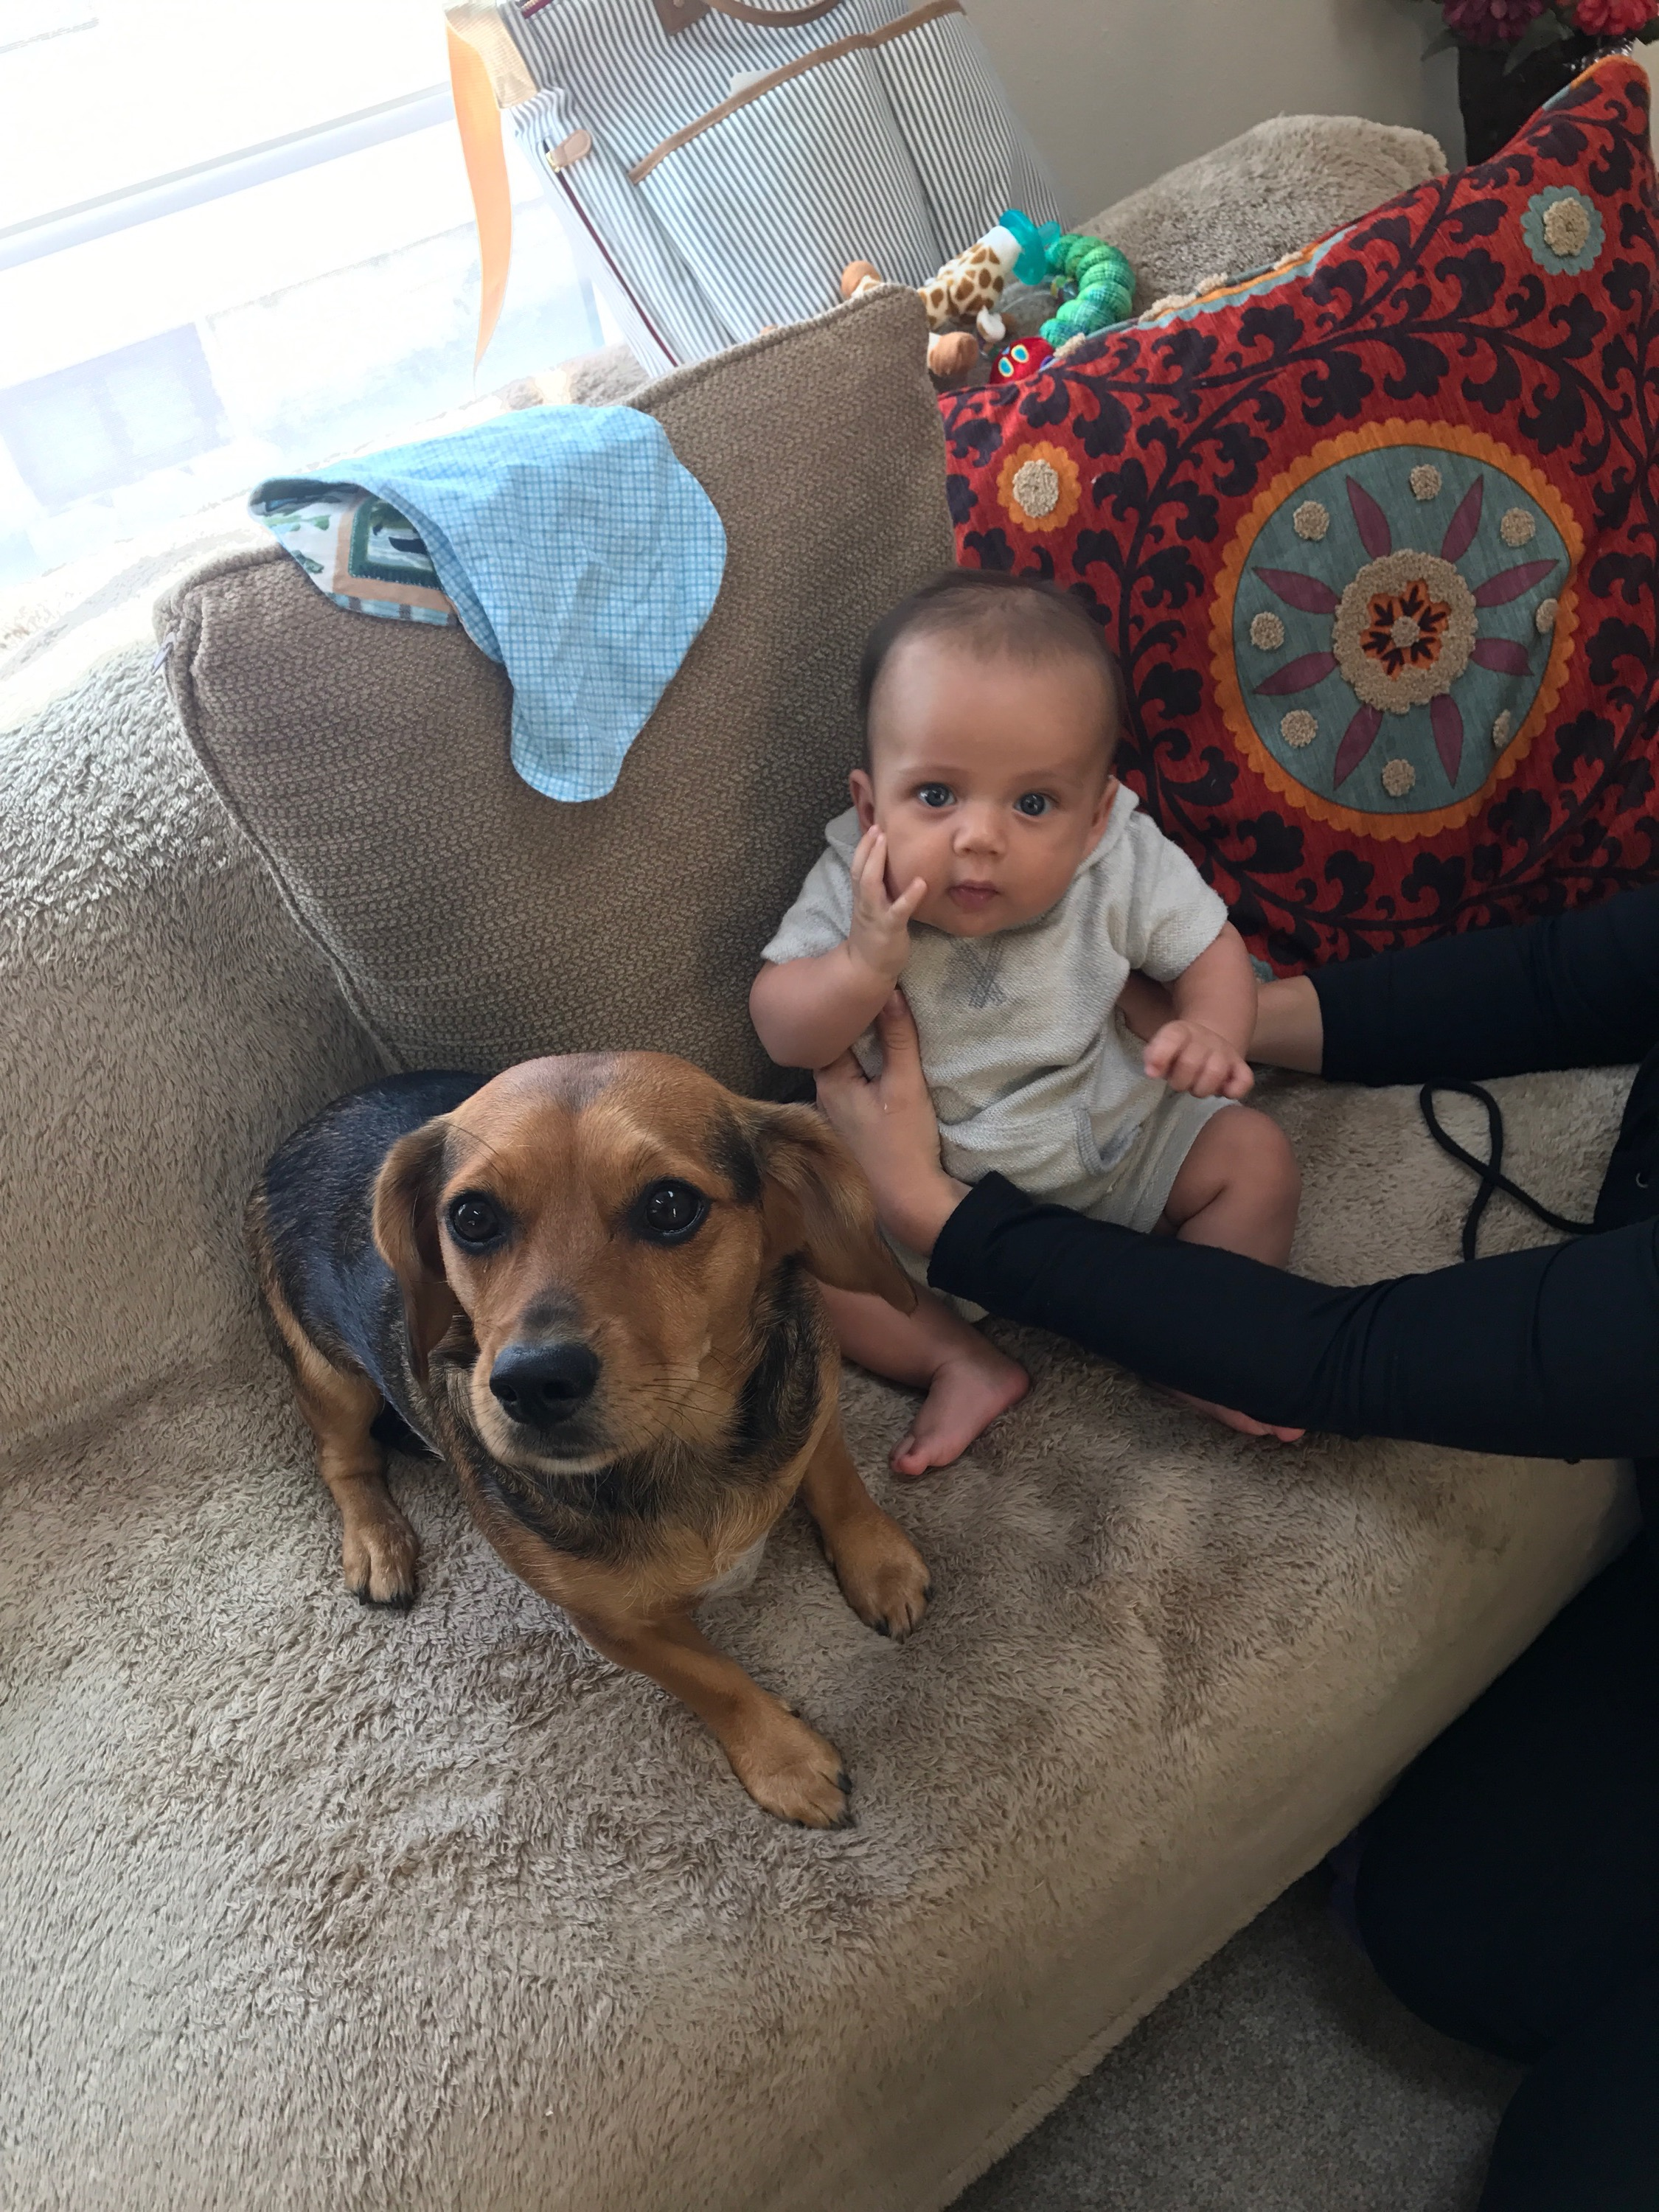 Lilly (my puppy niece) and a baby I don't know